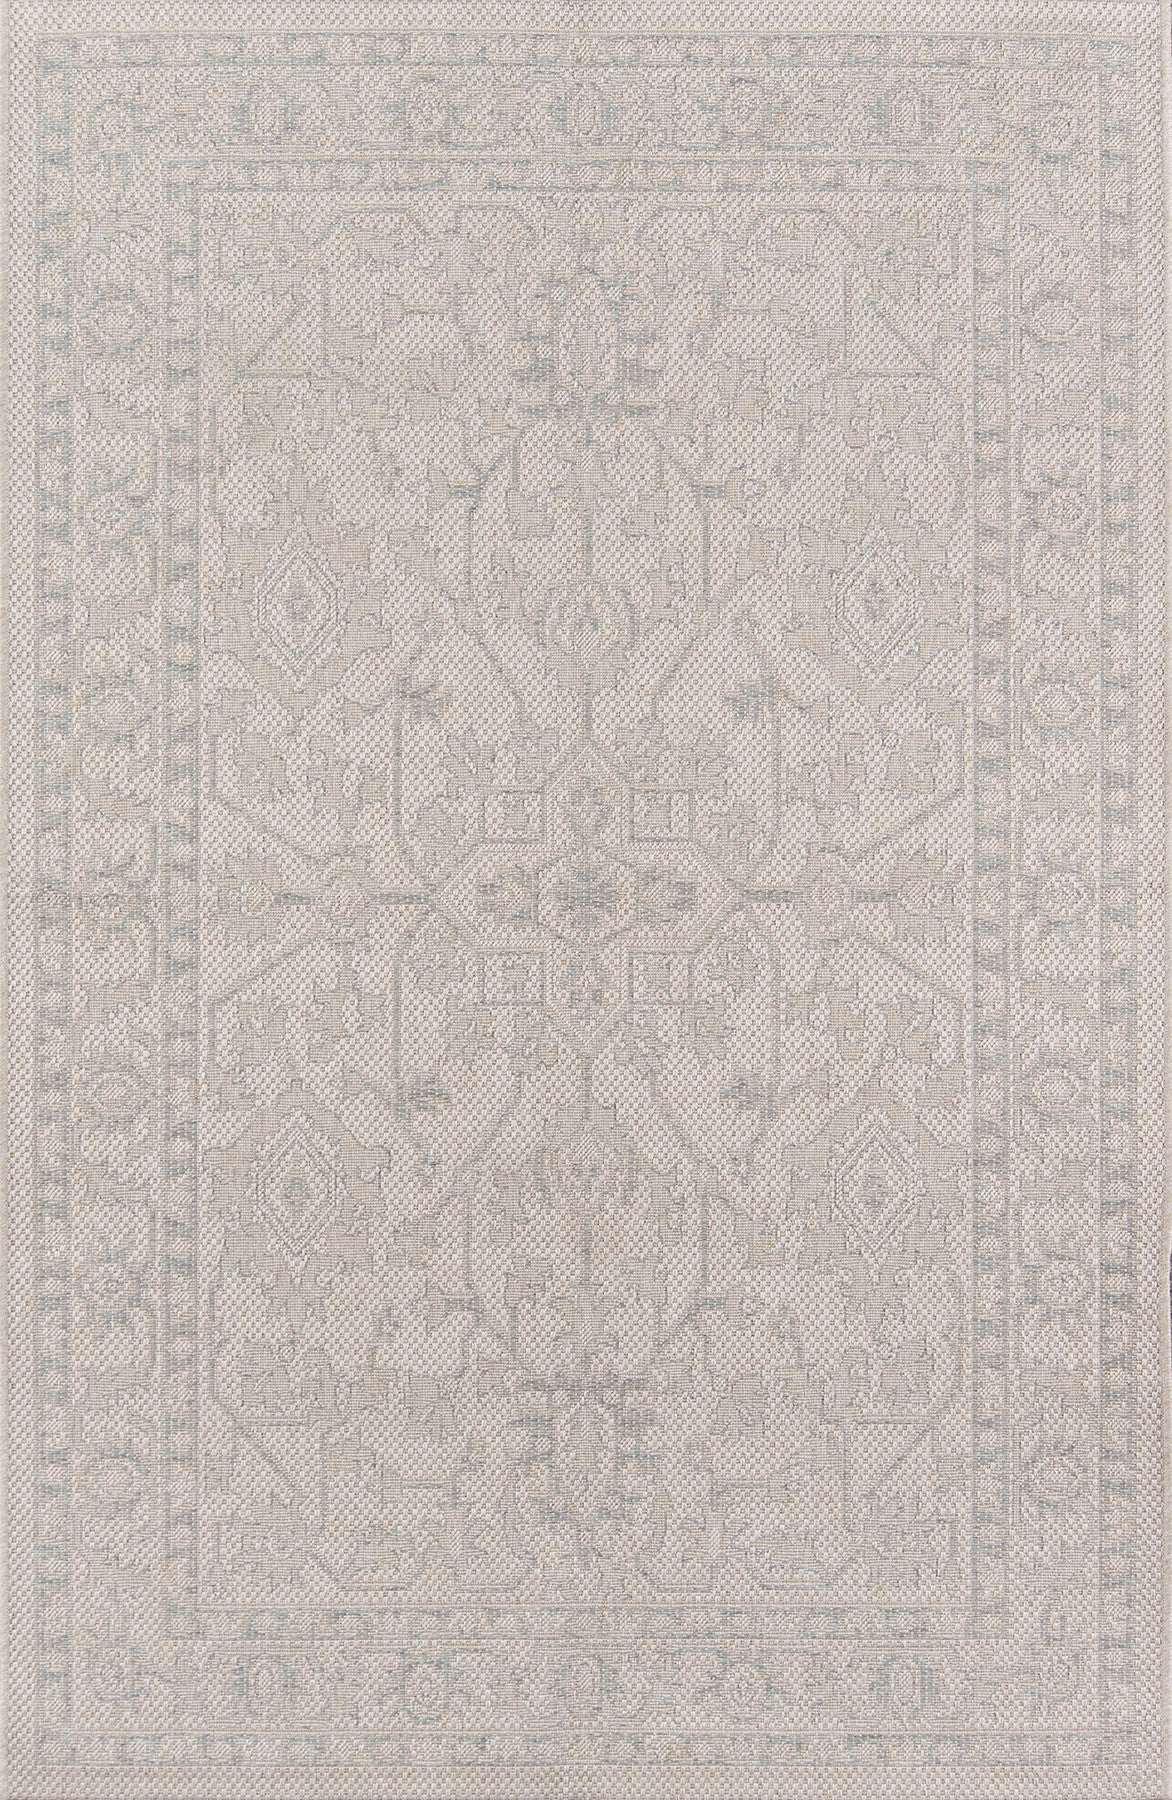 Momeni Downeast DOW-3 Grey Area Rug by Erin Gates main image